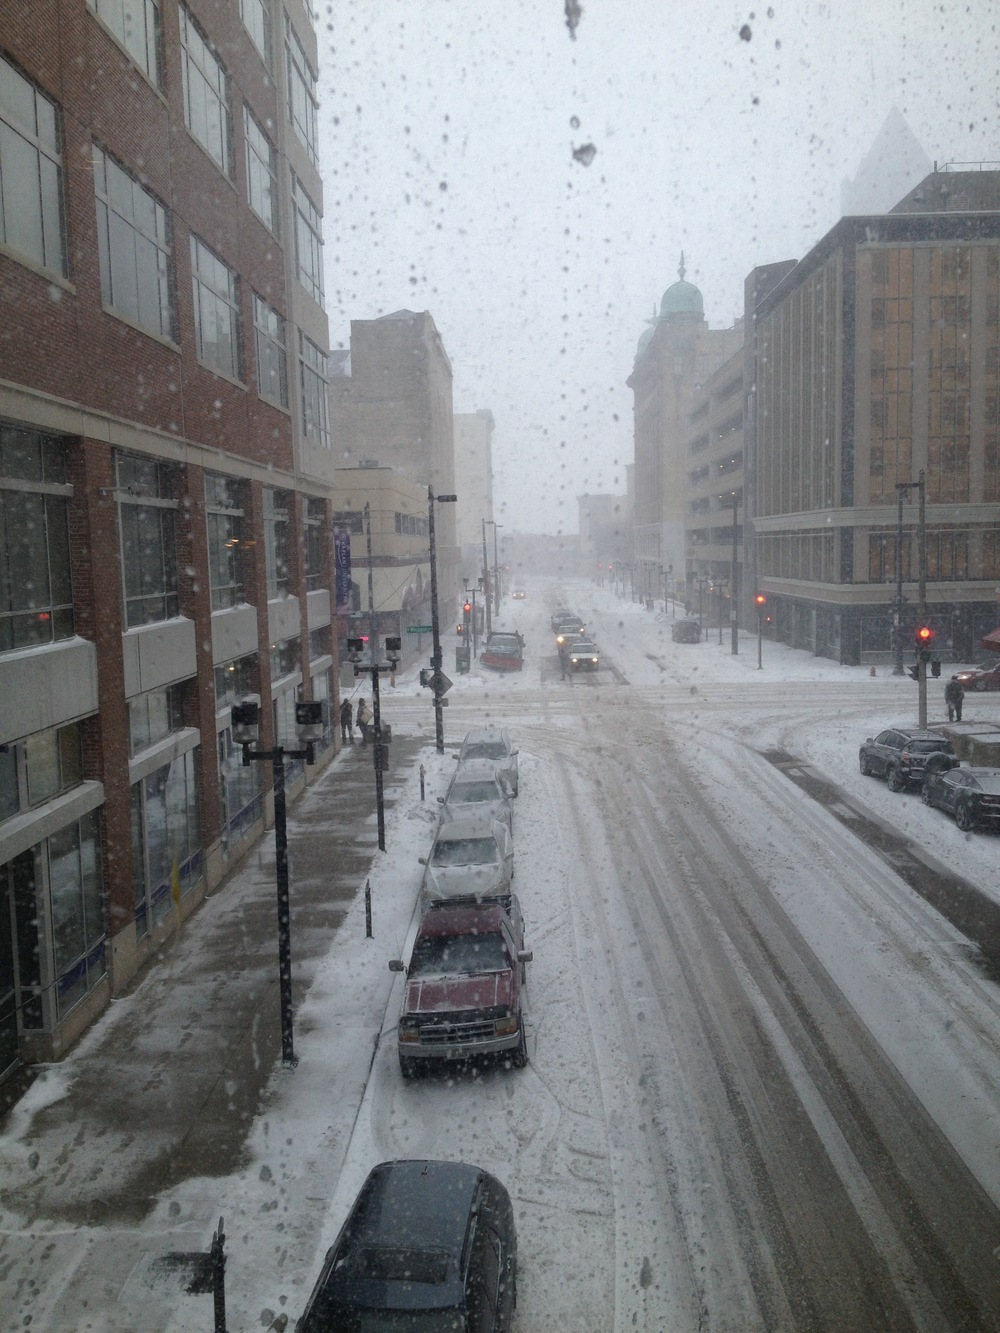 View from a Milwaukee skyway. Photo by the author.